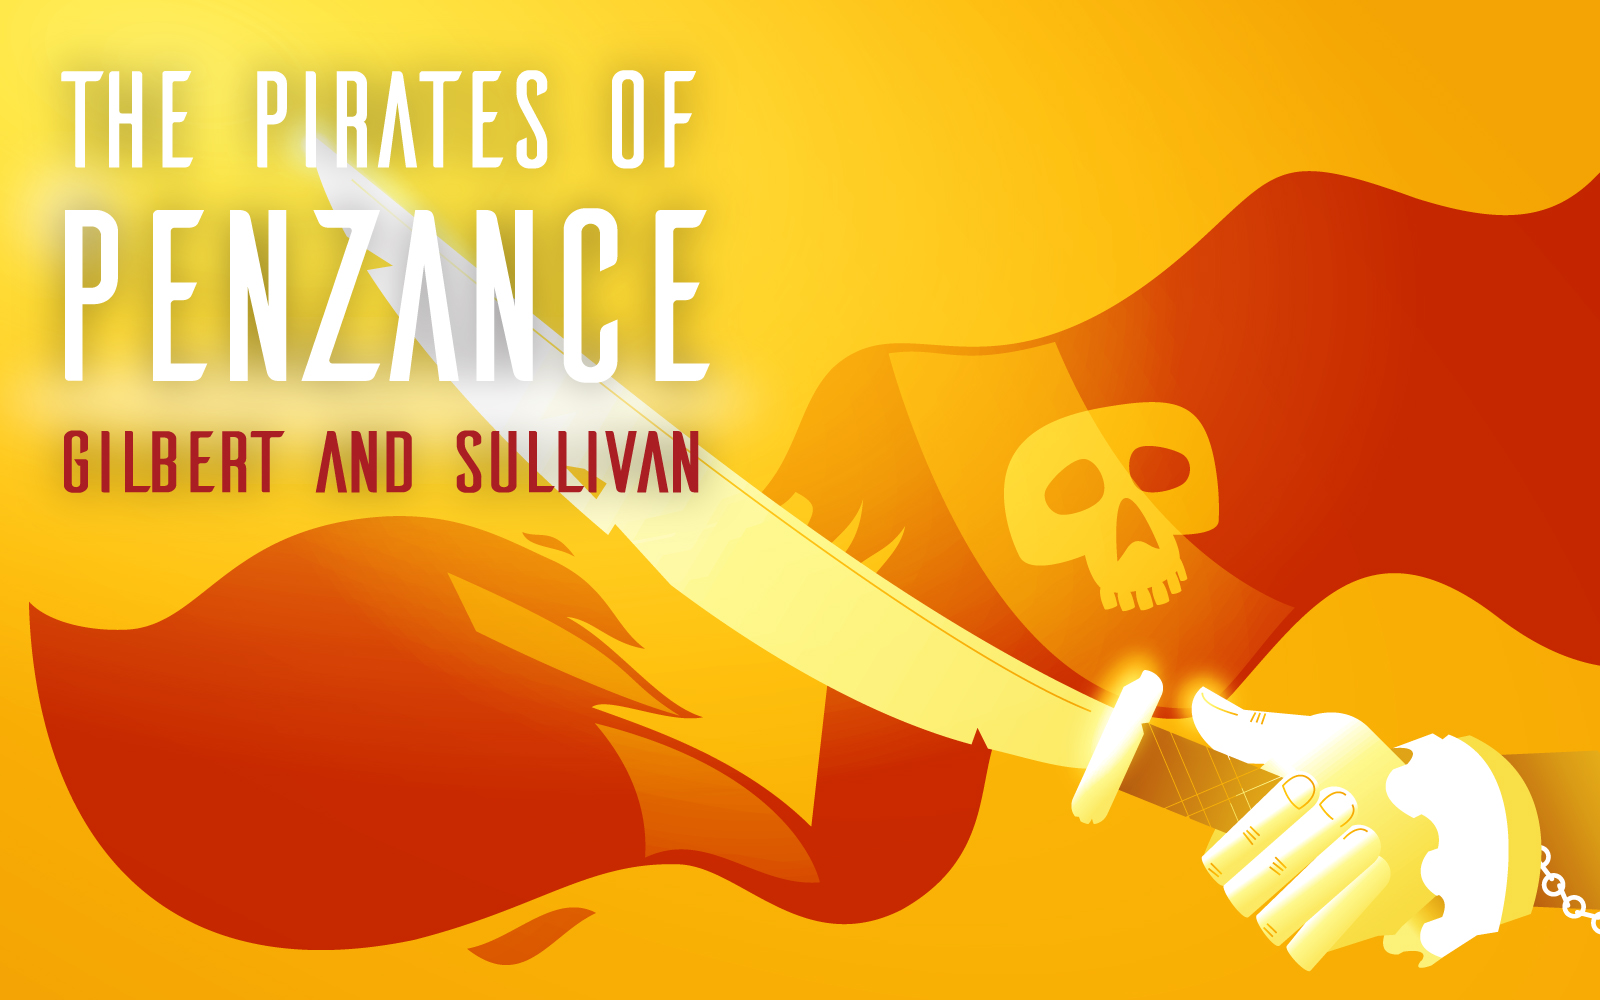 Olivet_spring_musical_pirates_of_penzance_theater_music_web.jpg